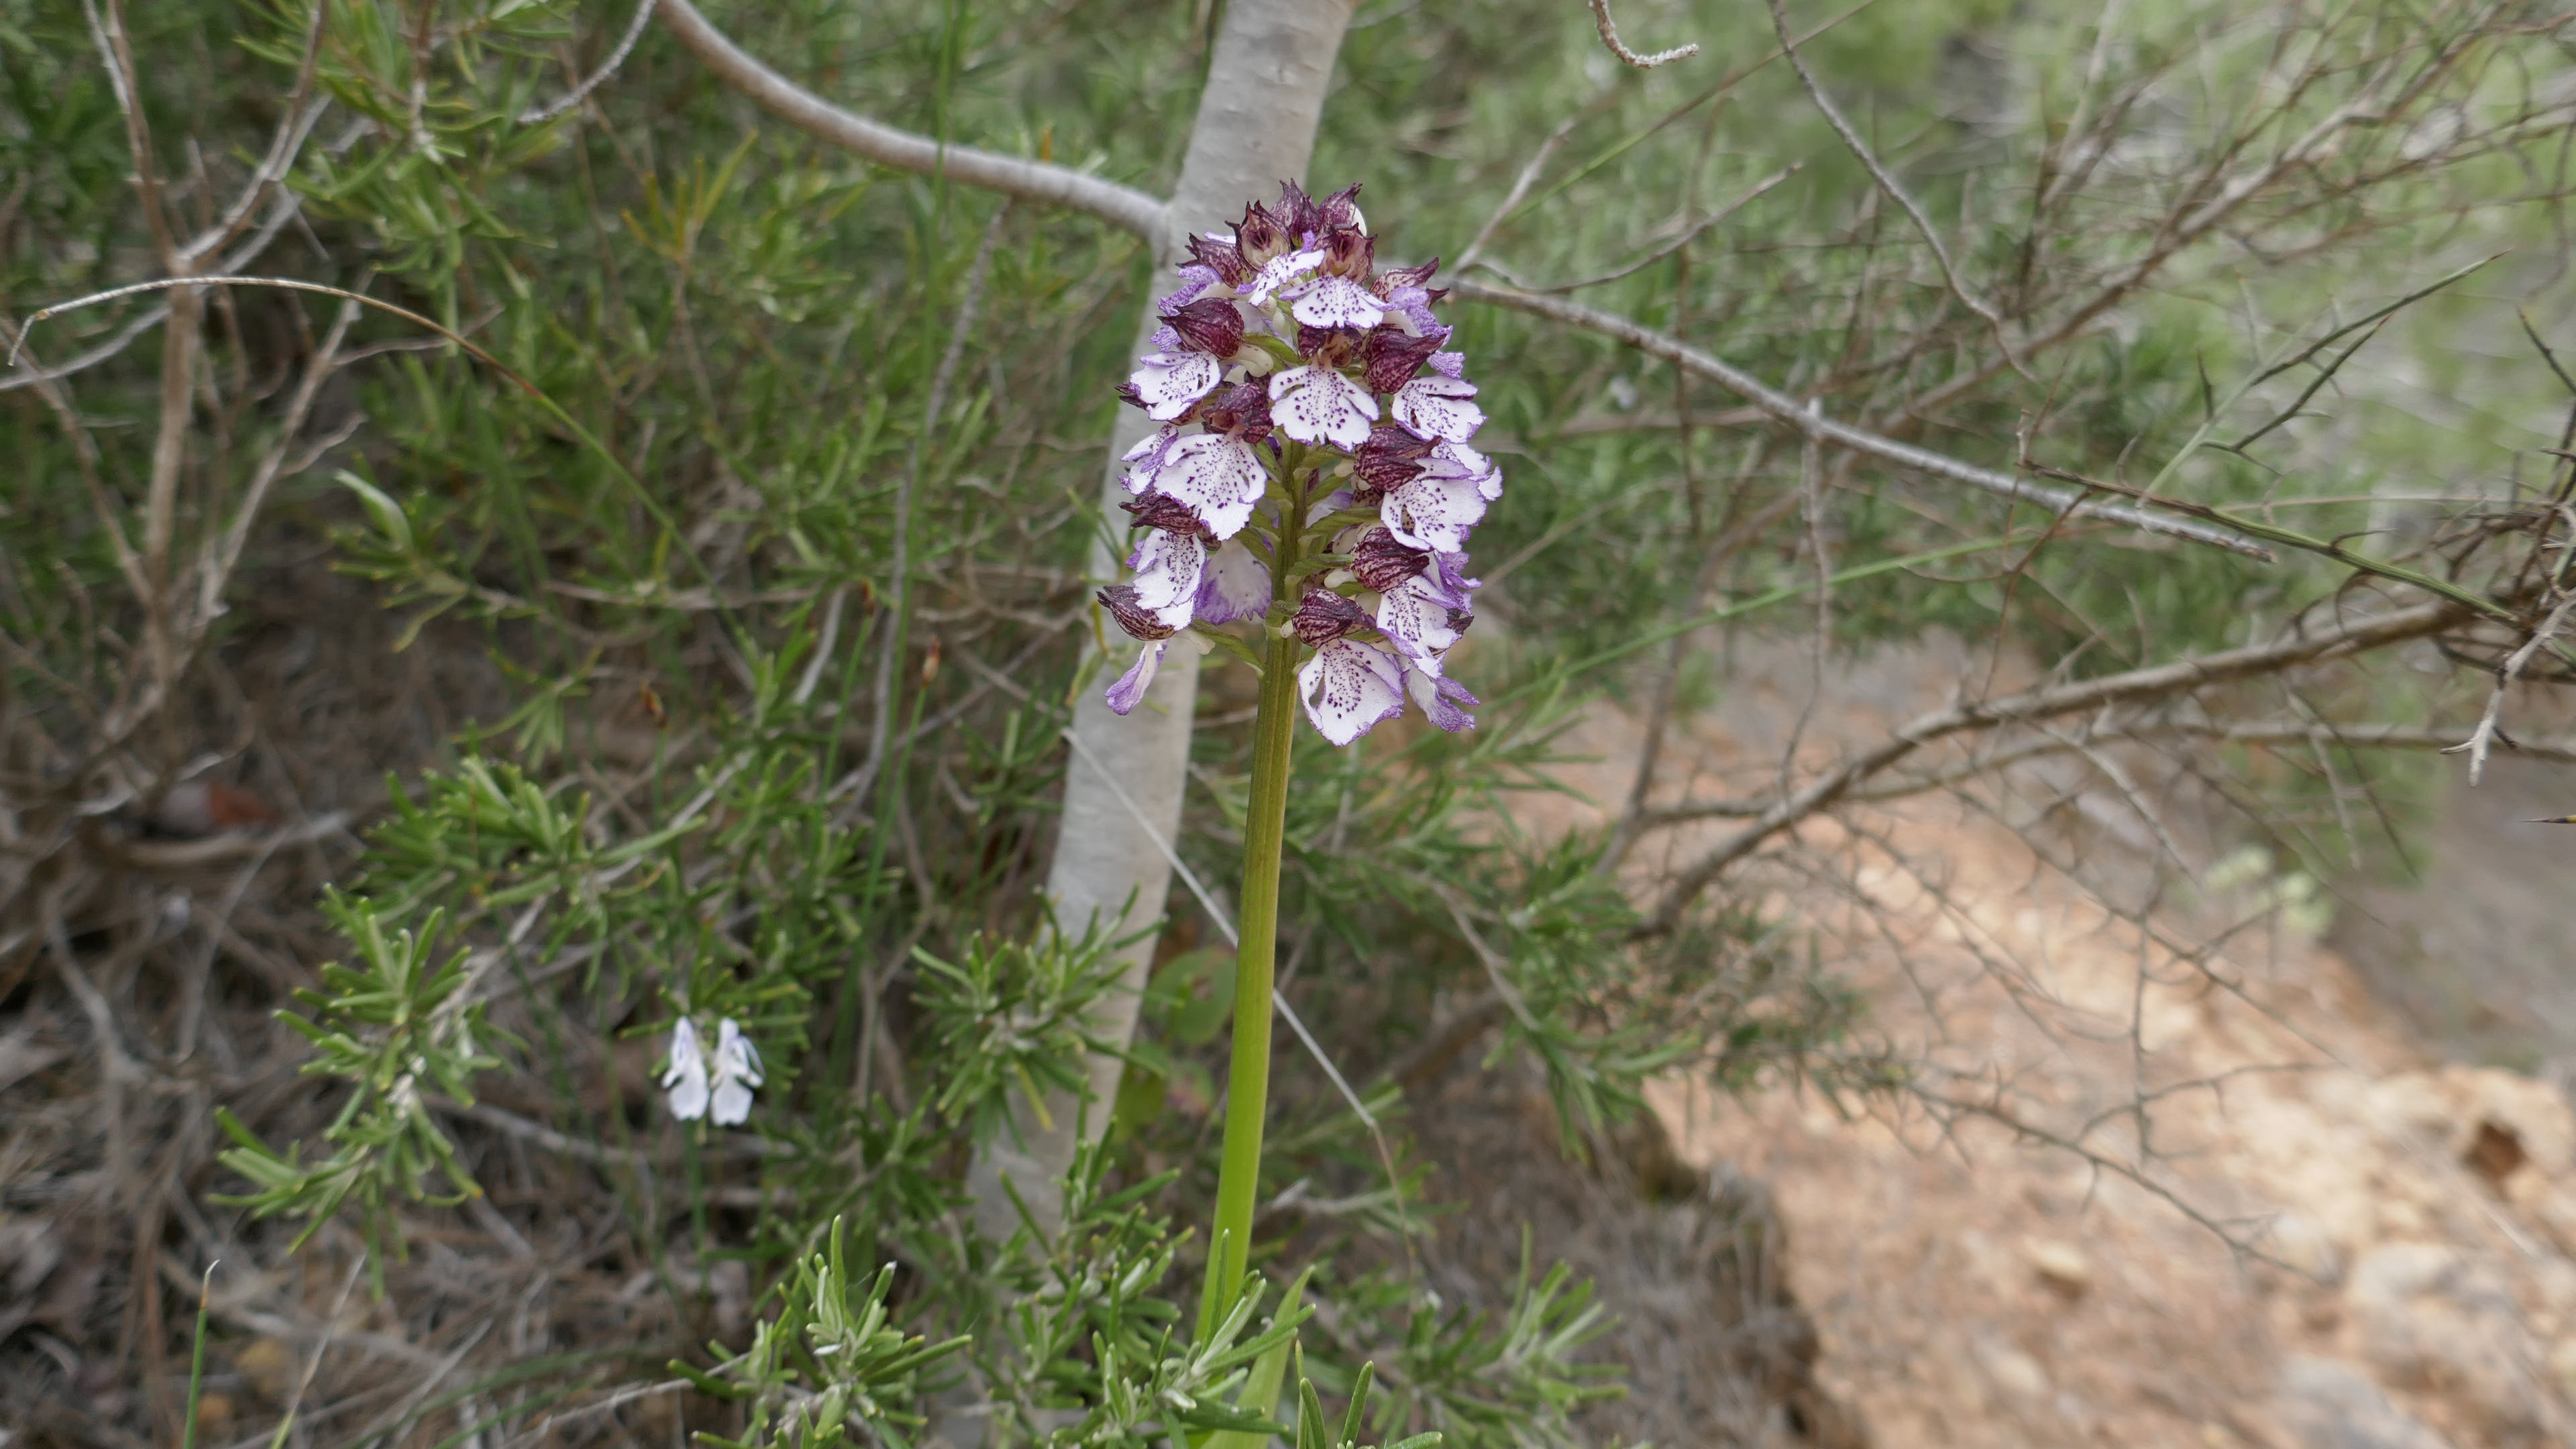 Free stock photo of close-up view, Wild delicate orchid in grassland